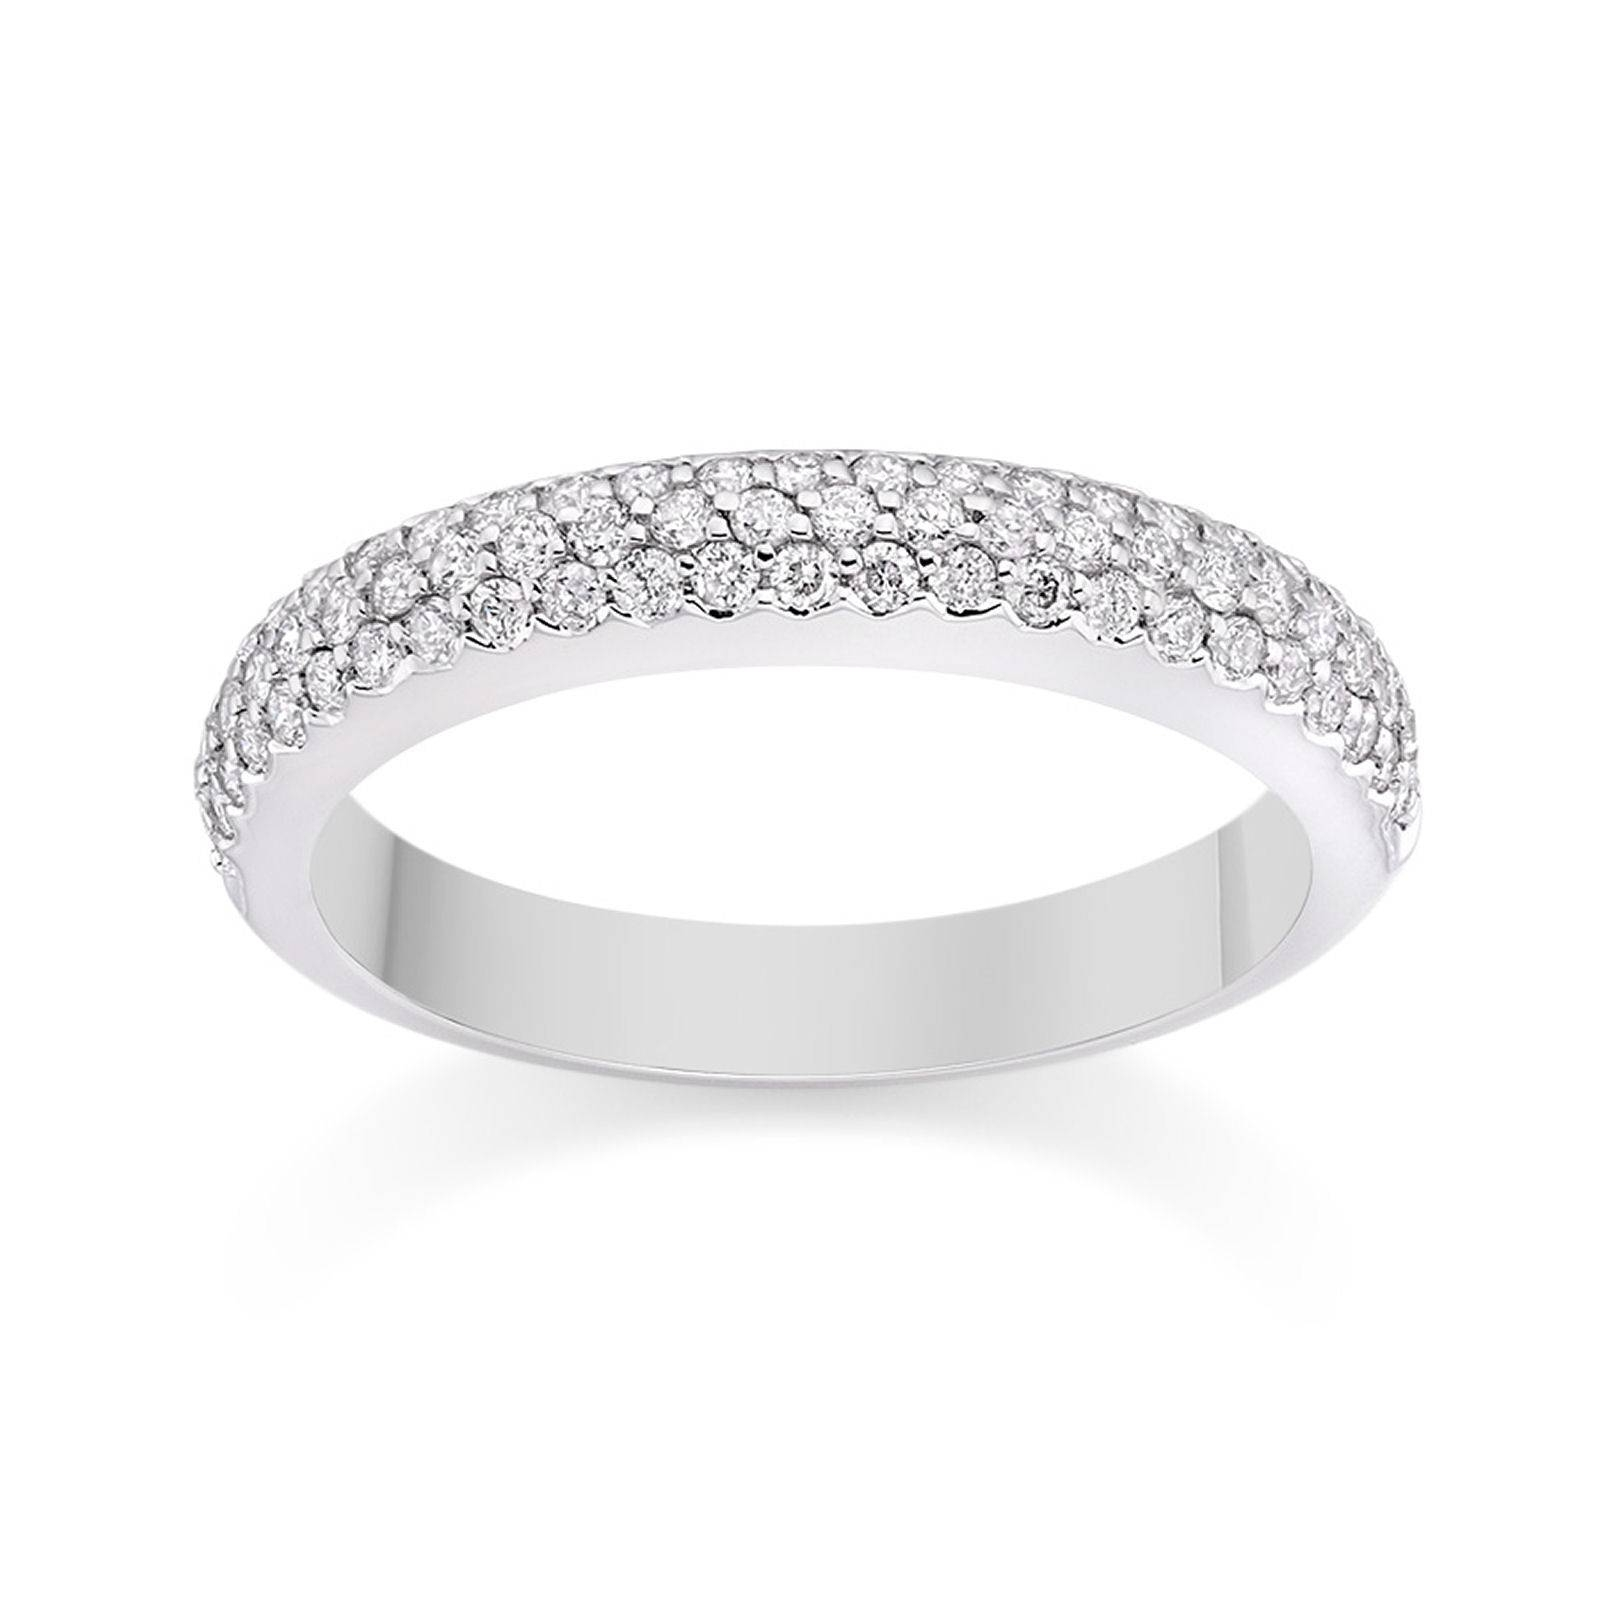 Pave Set Diamond Wedding Ring In 18K White Gold Wedding Dress From Throughout Pave Wedding Rings (Gallery 1 of 15)